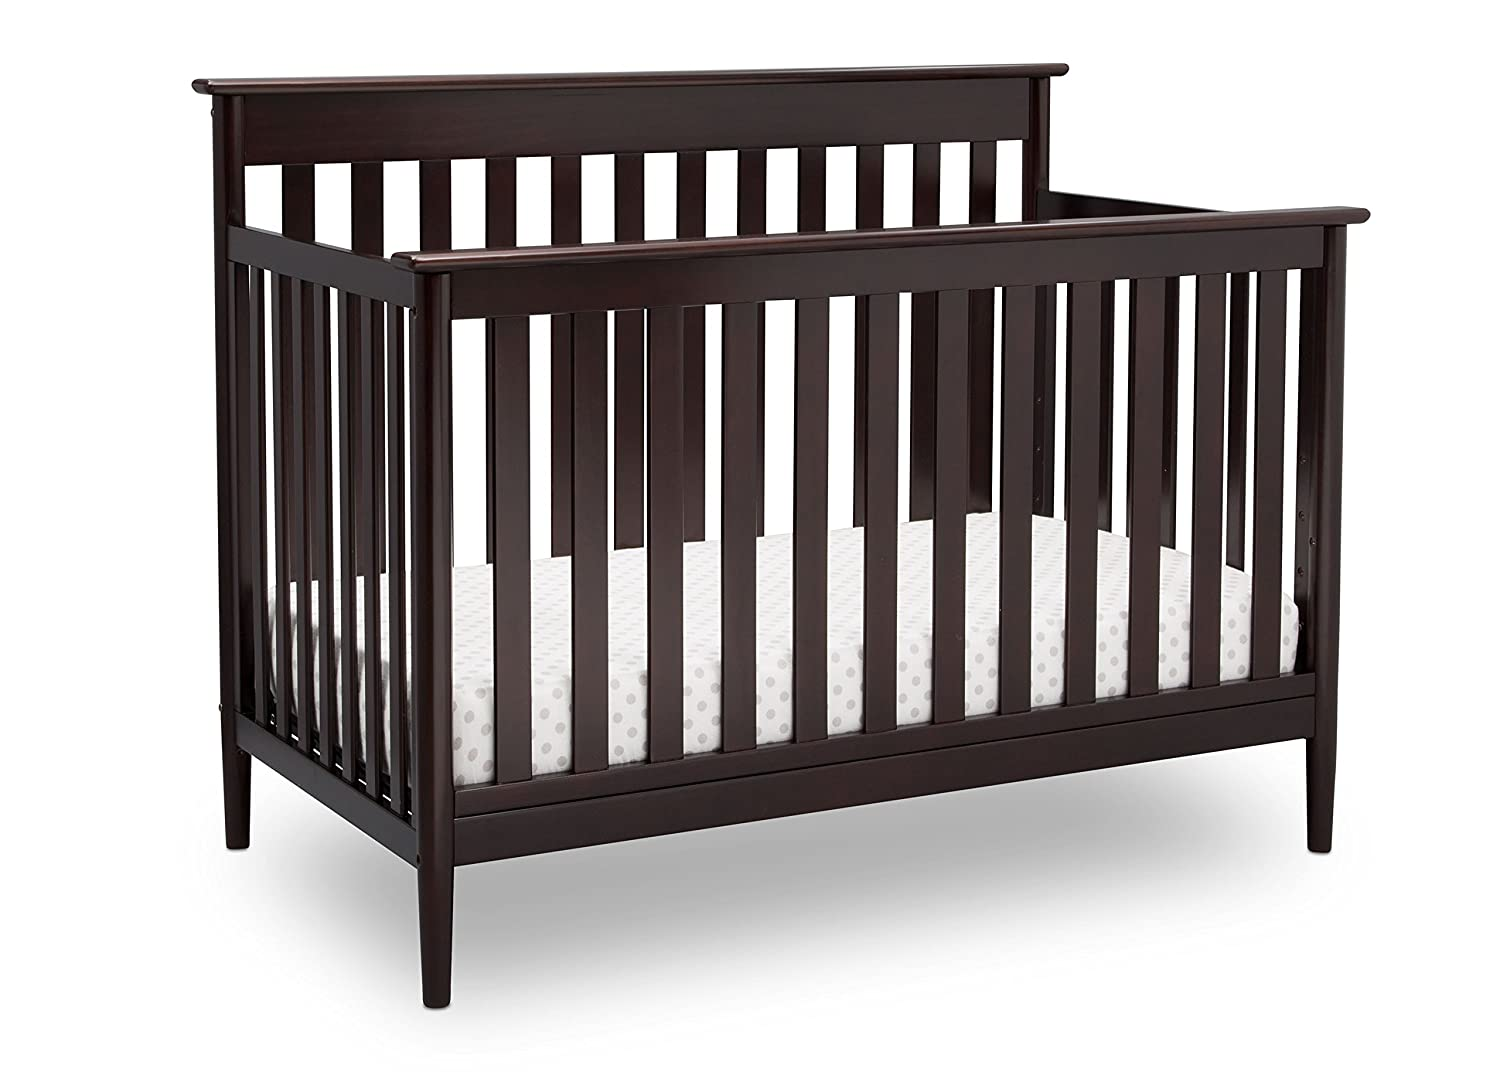 Delta Children Greyson Signature 4-in-1 Convertible Baby Crib, Dark Chocolate